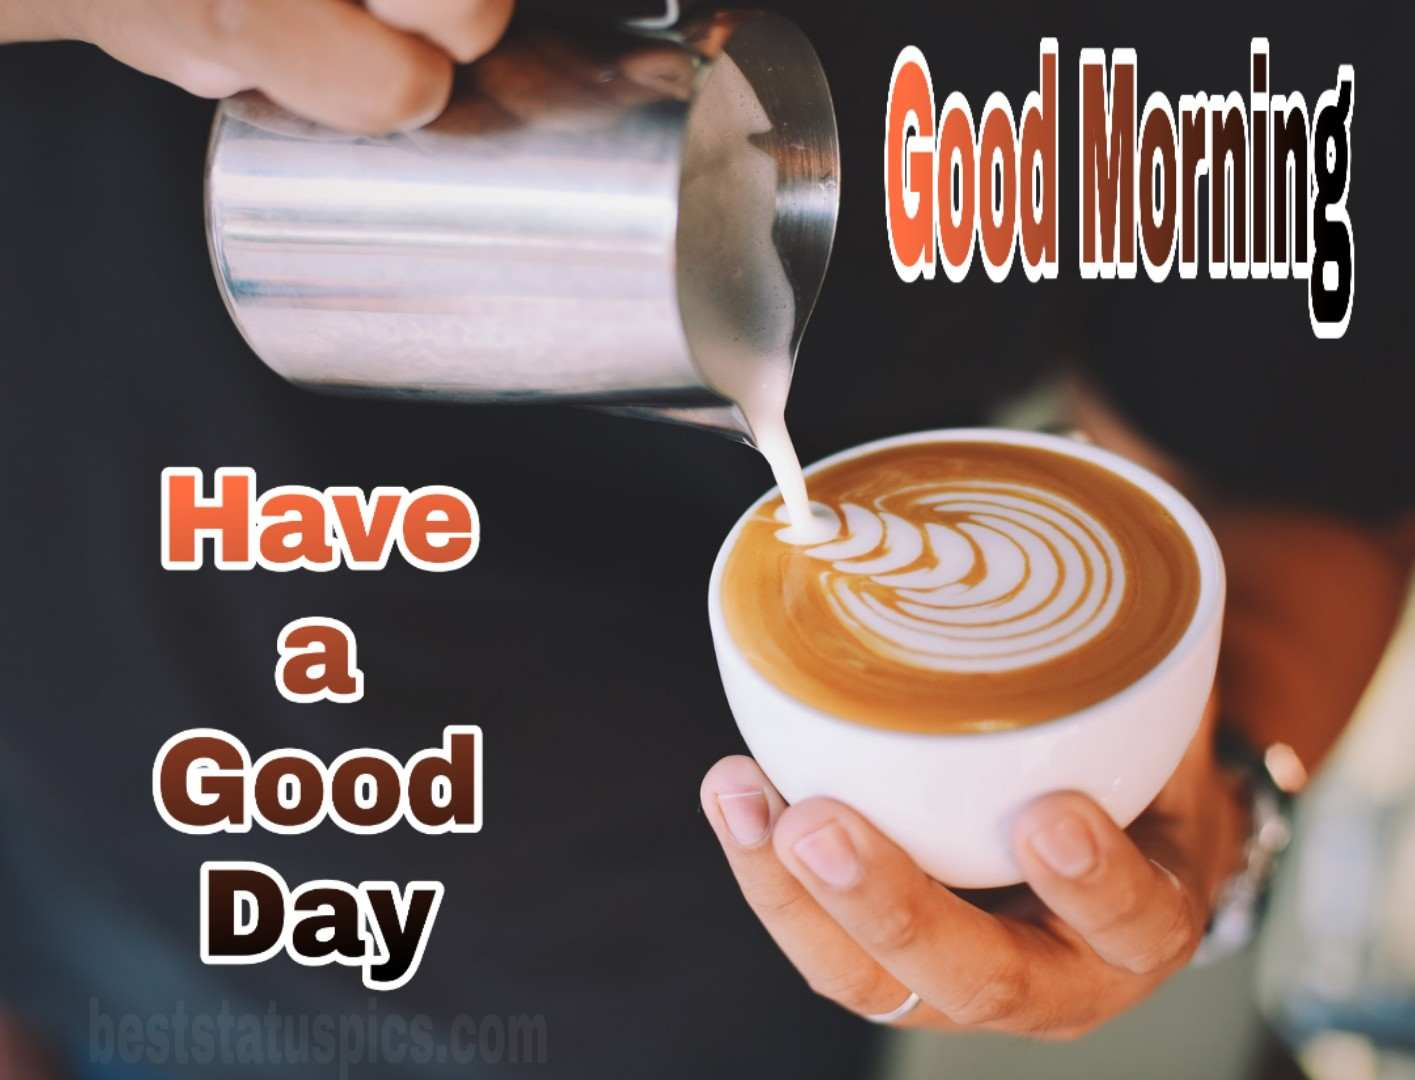 Good morning hot coffee image with have a good day